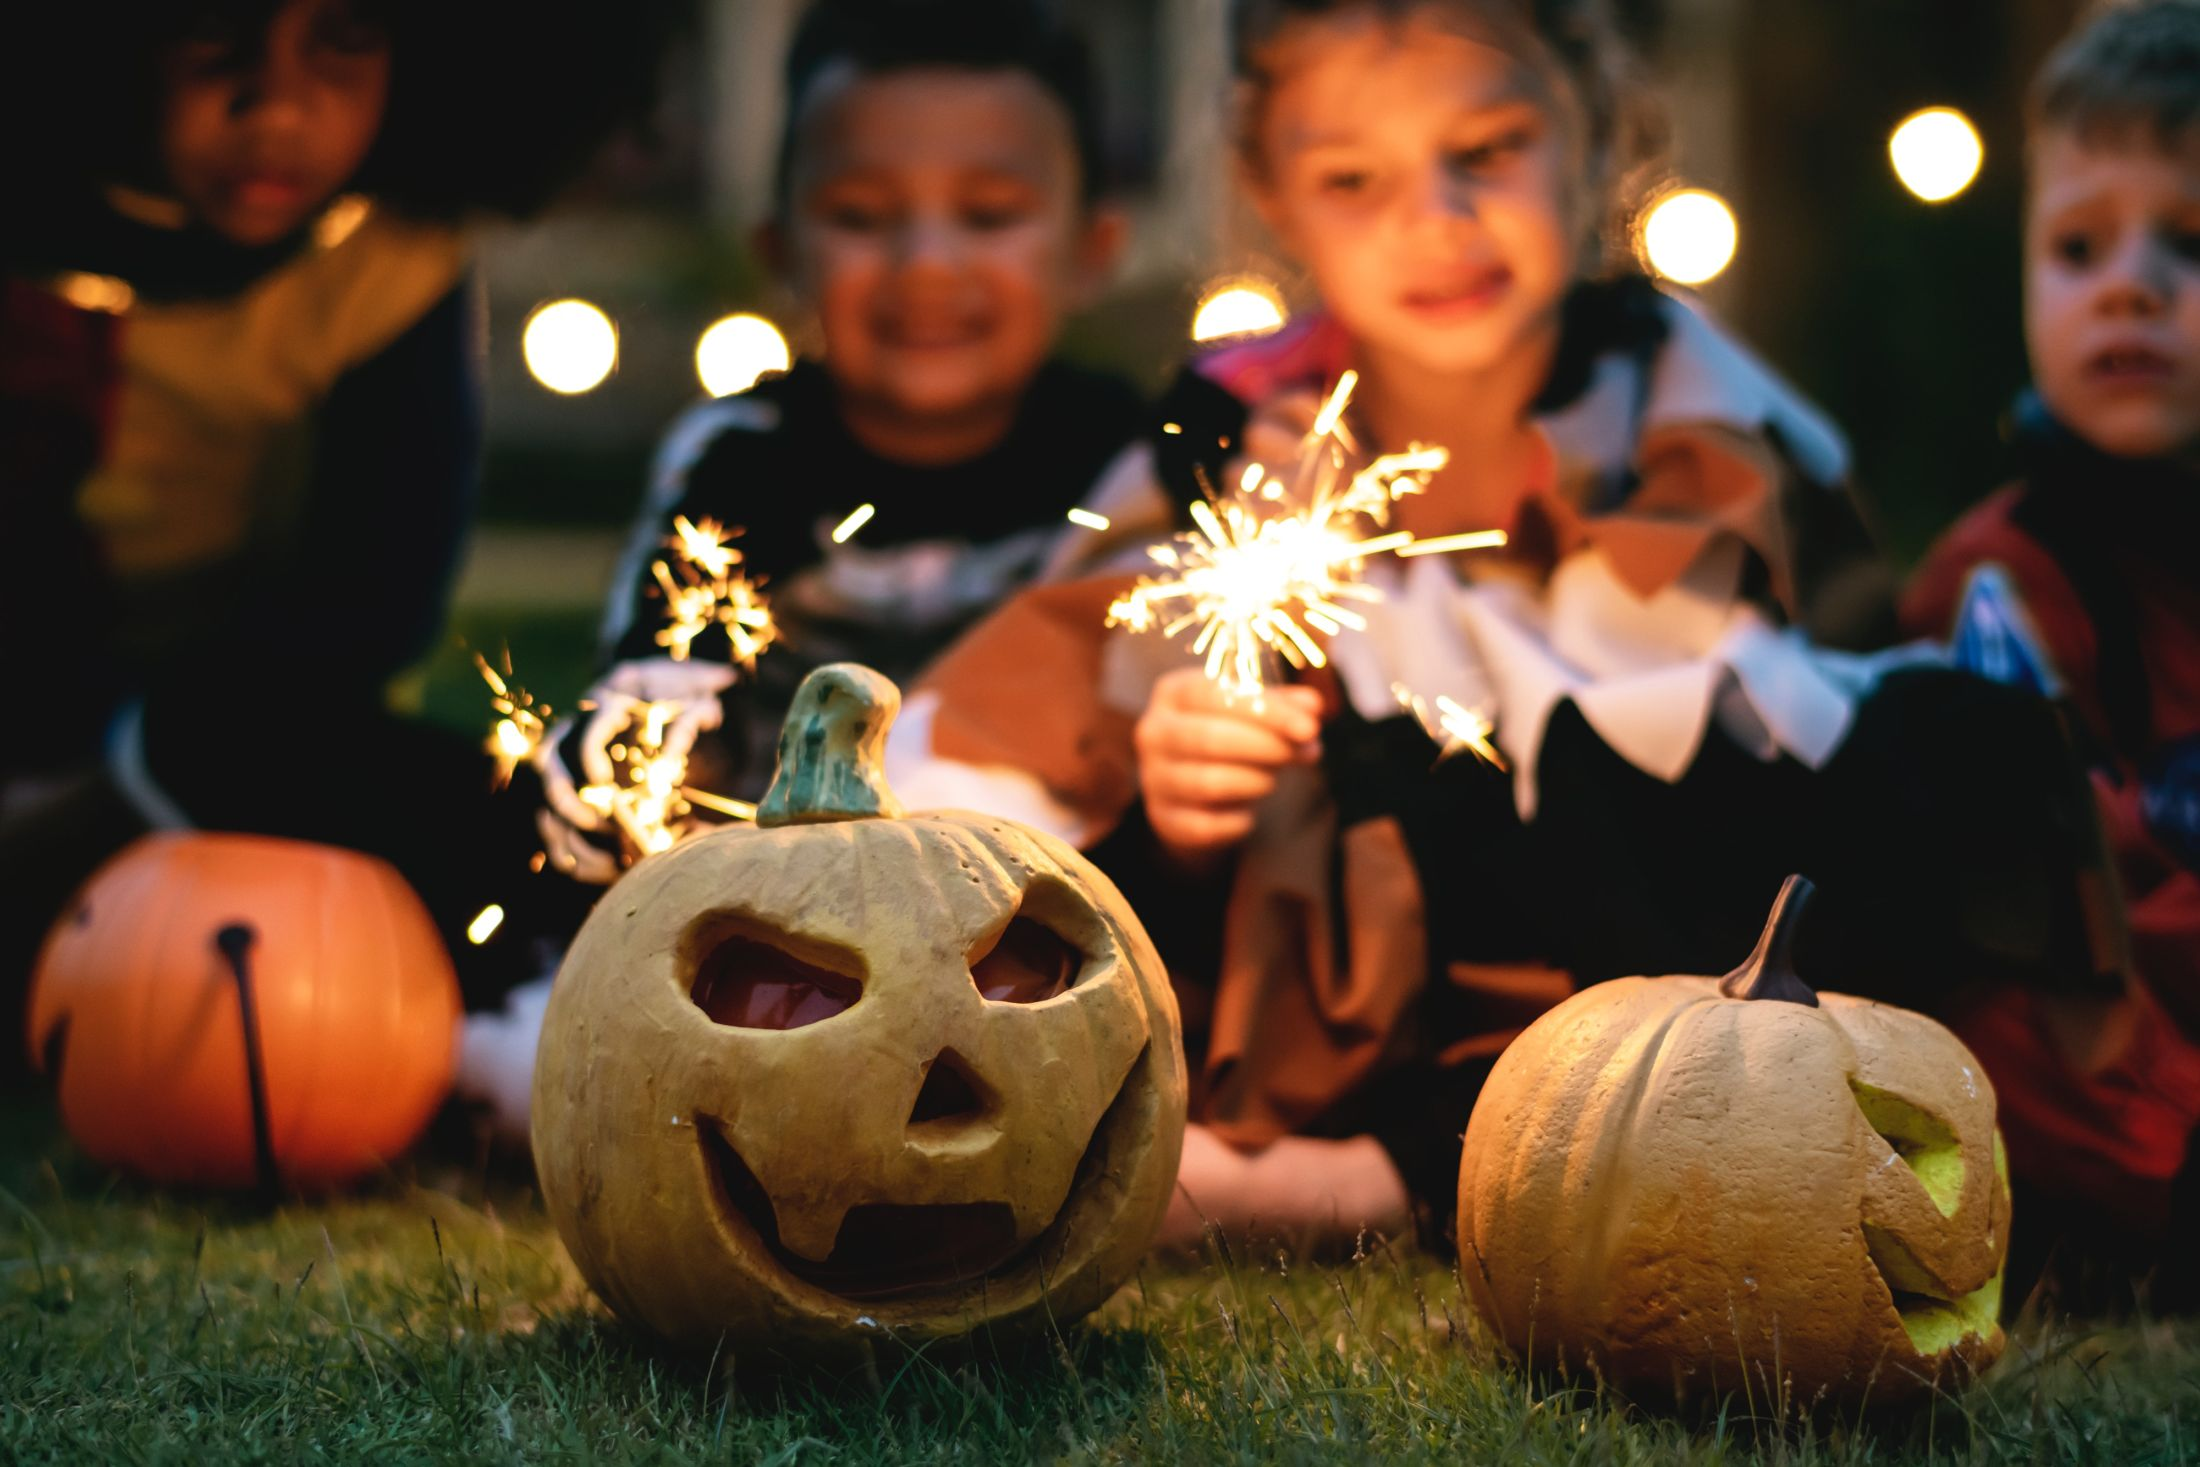 Halloween-pool-party-spook-lagoon-kids-with-pumpkins-image